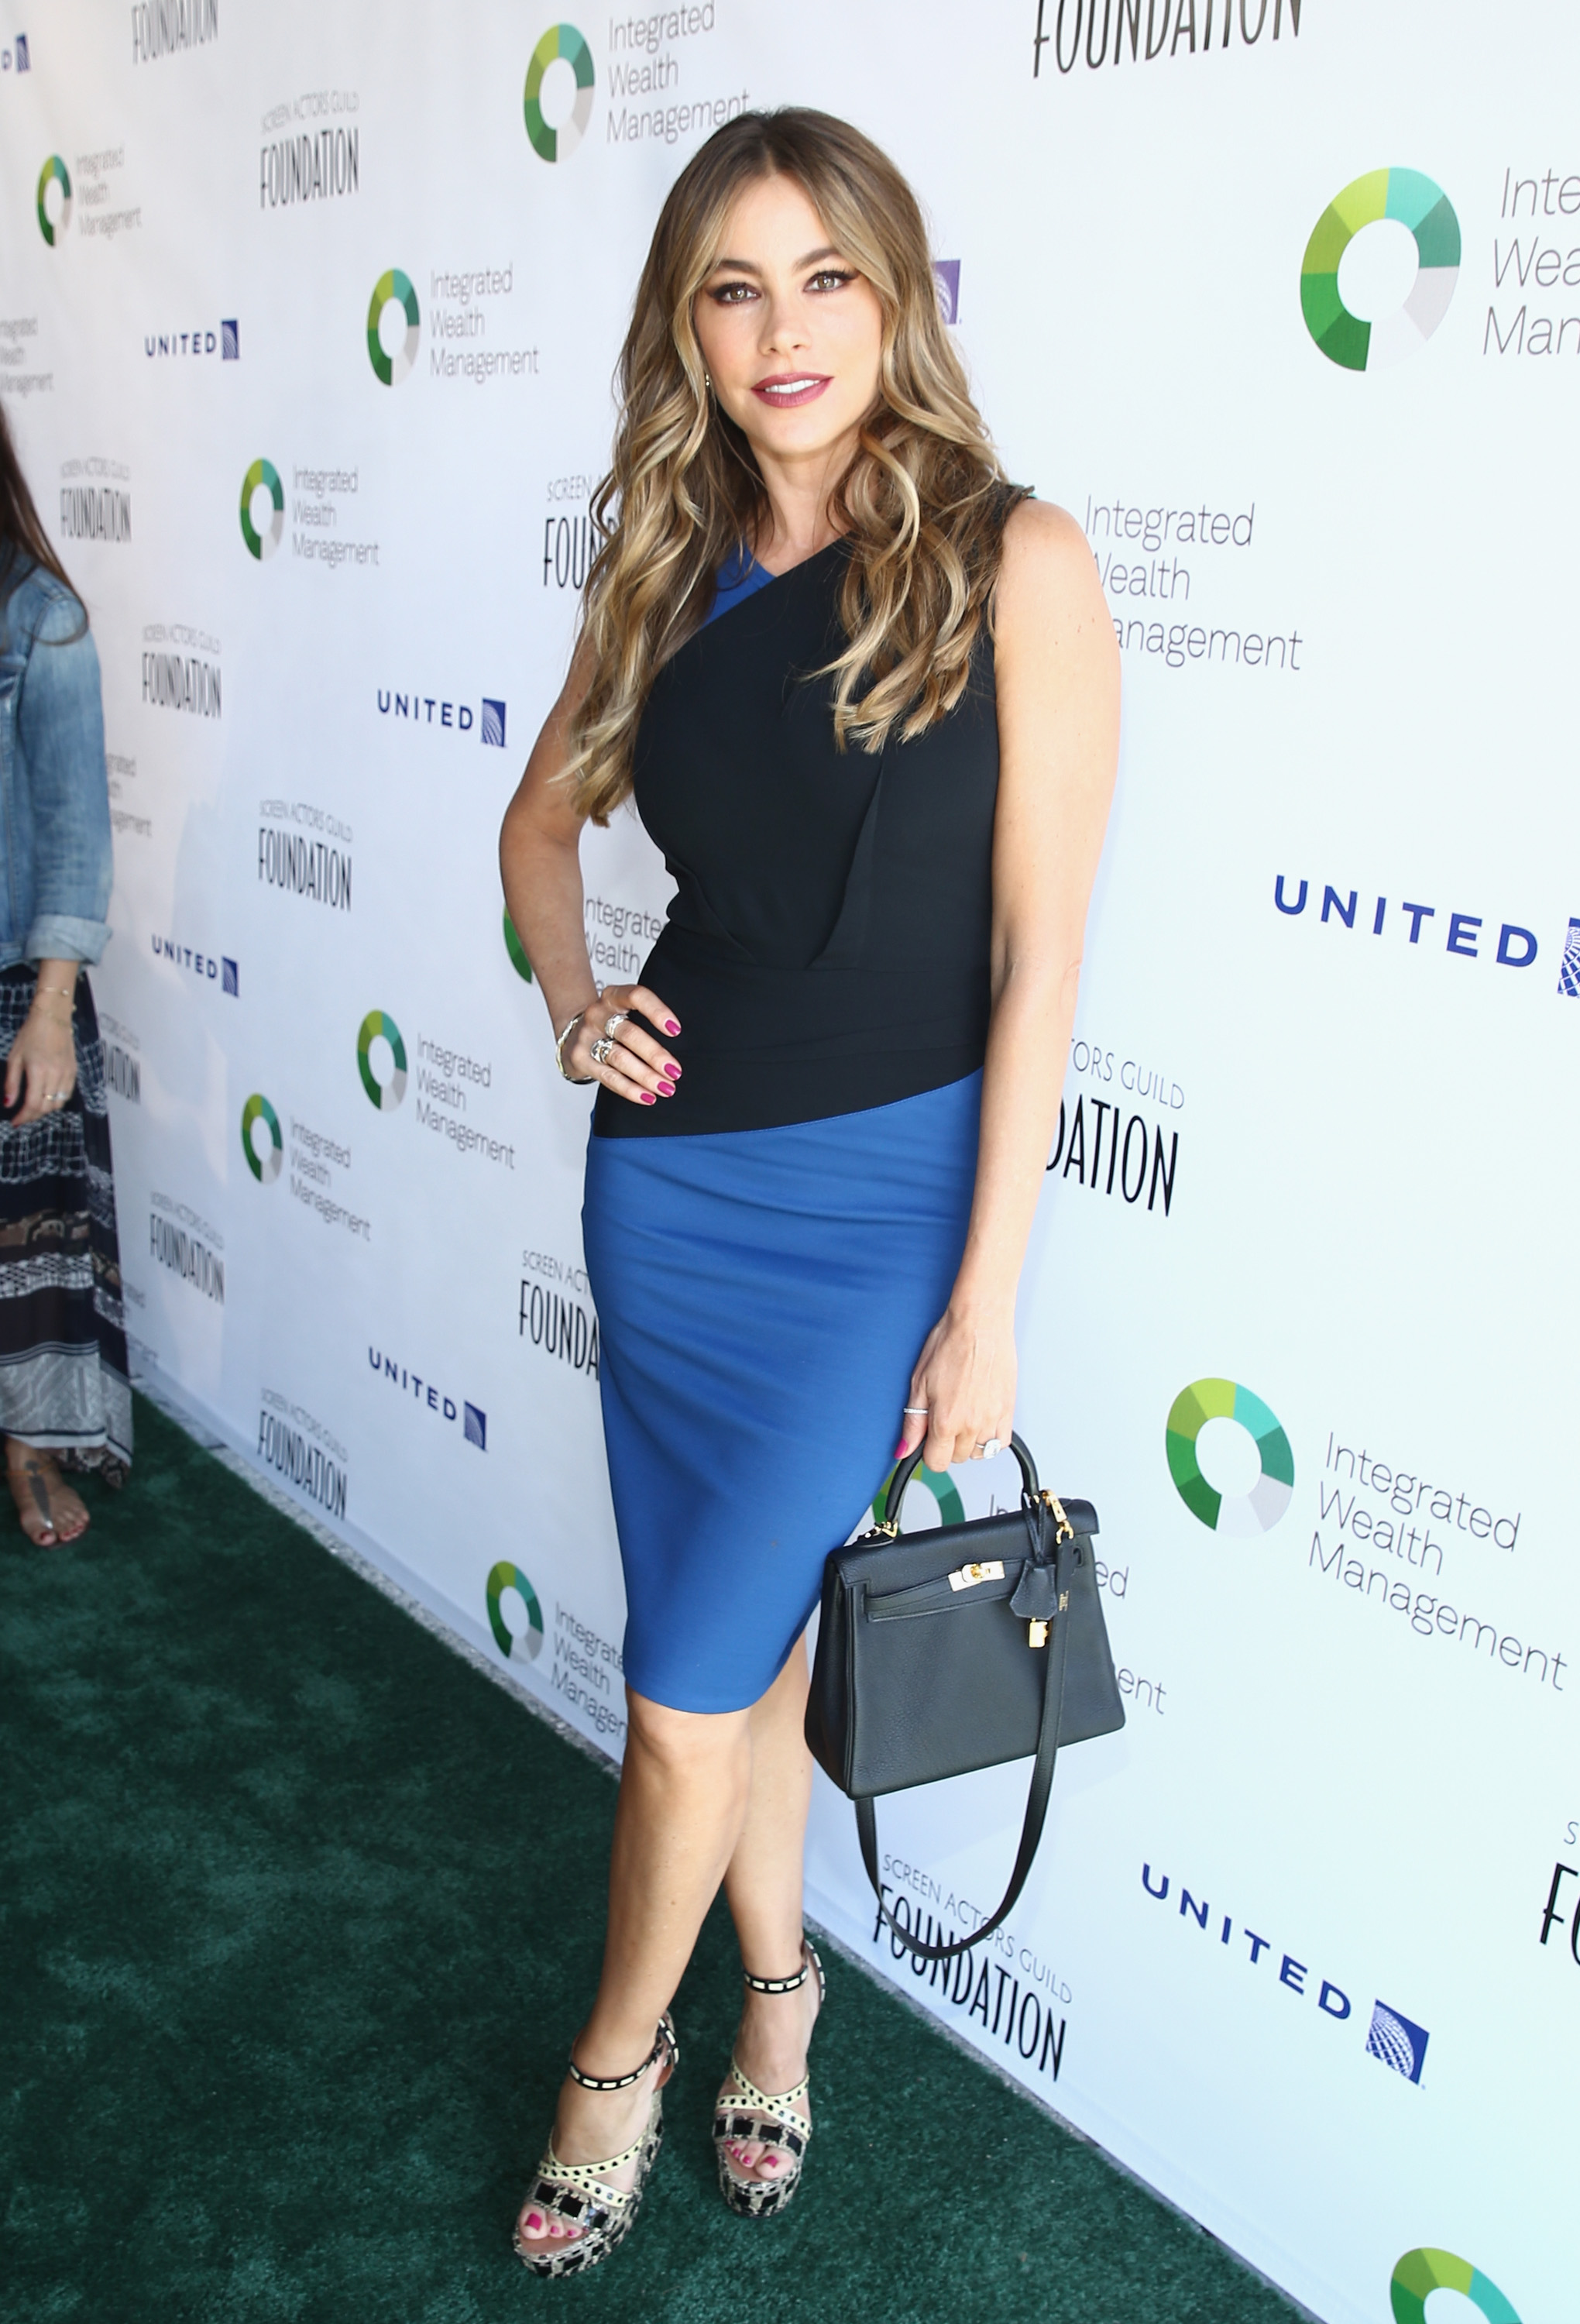 Actress Sofia Vergara attends The Screen Actors Guild Foundation's 6th Annual Los Angeles Golf Classic on June 8, 2015 in Burbank, California.  (Photo by Mark Davis/Getty Images for The Screen Actors Guild Foundation)